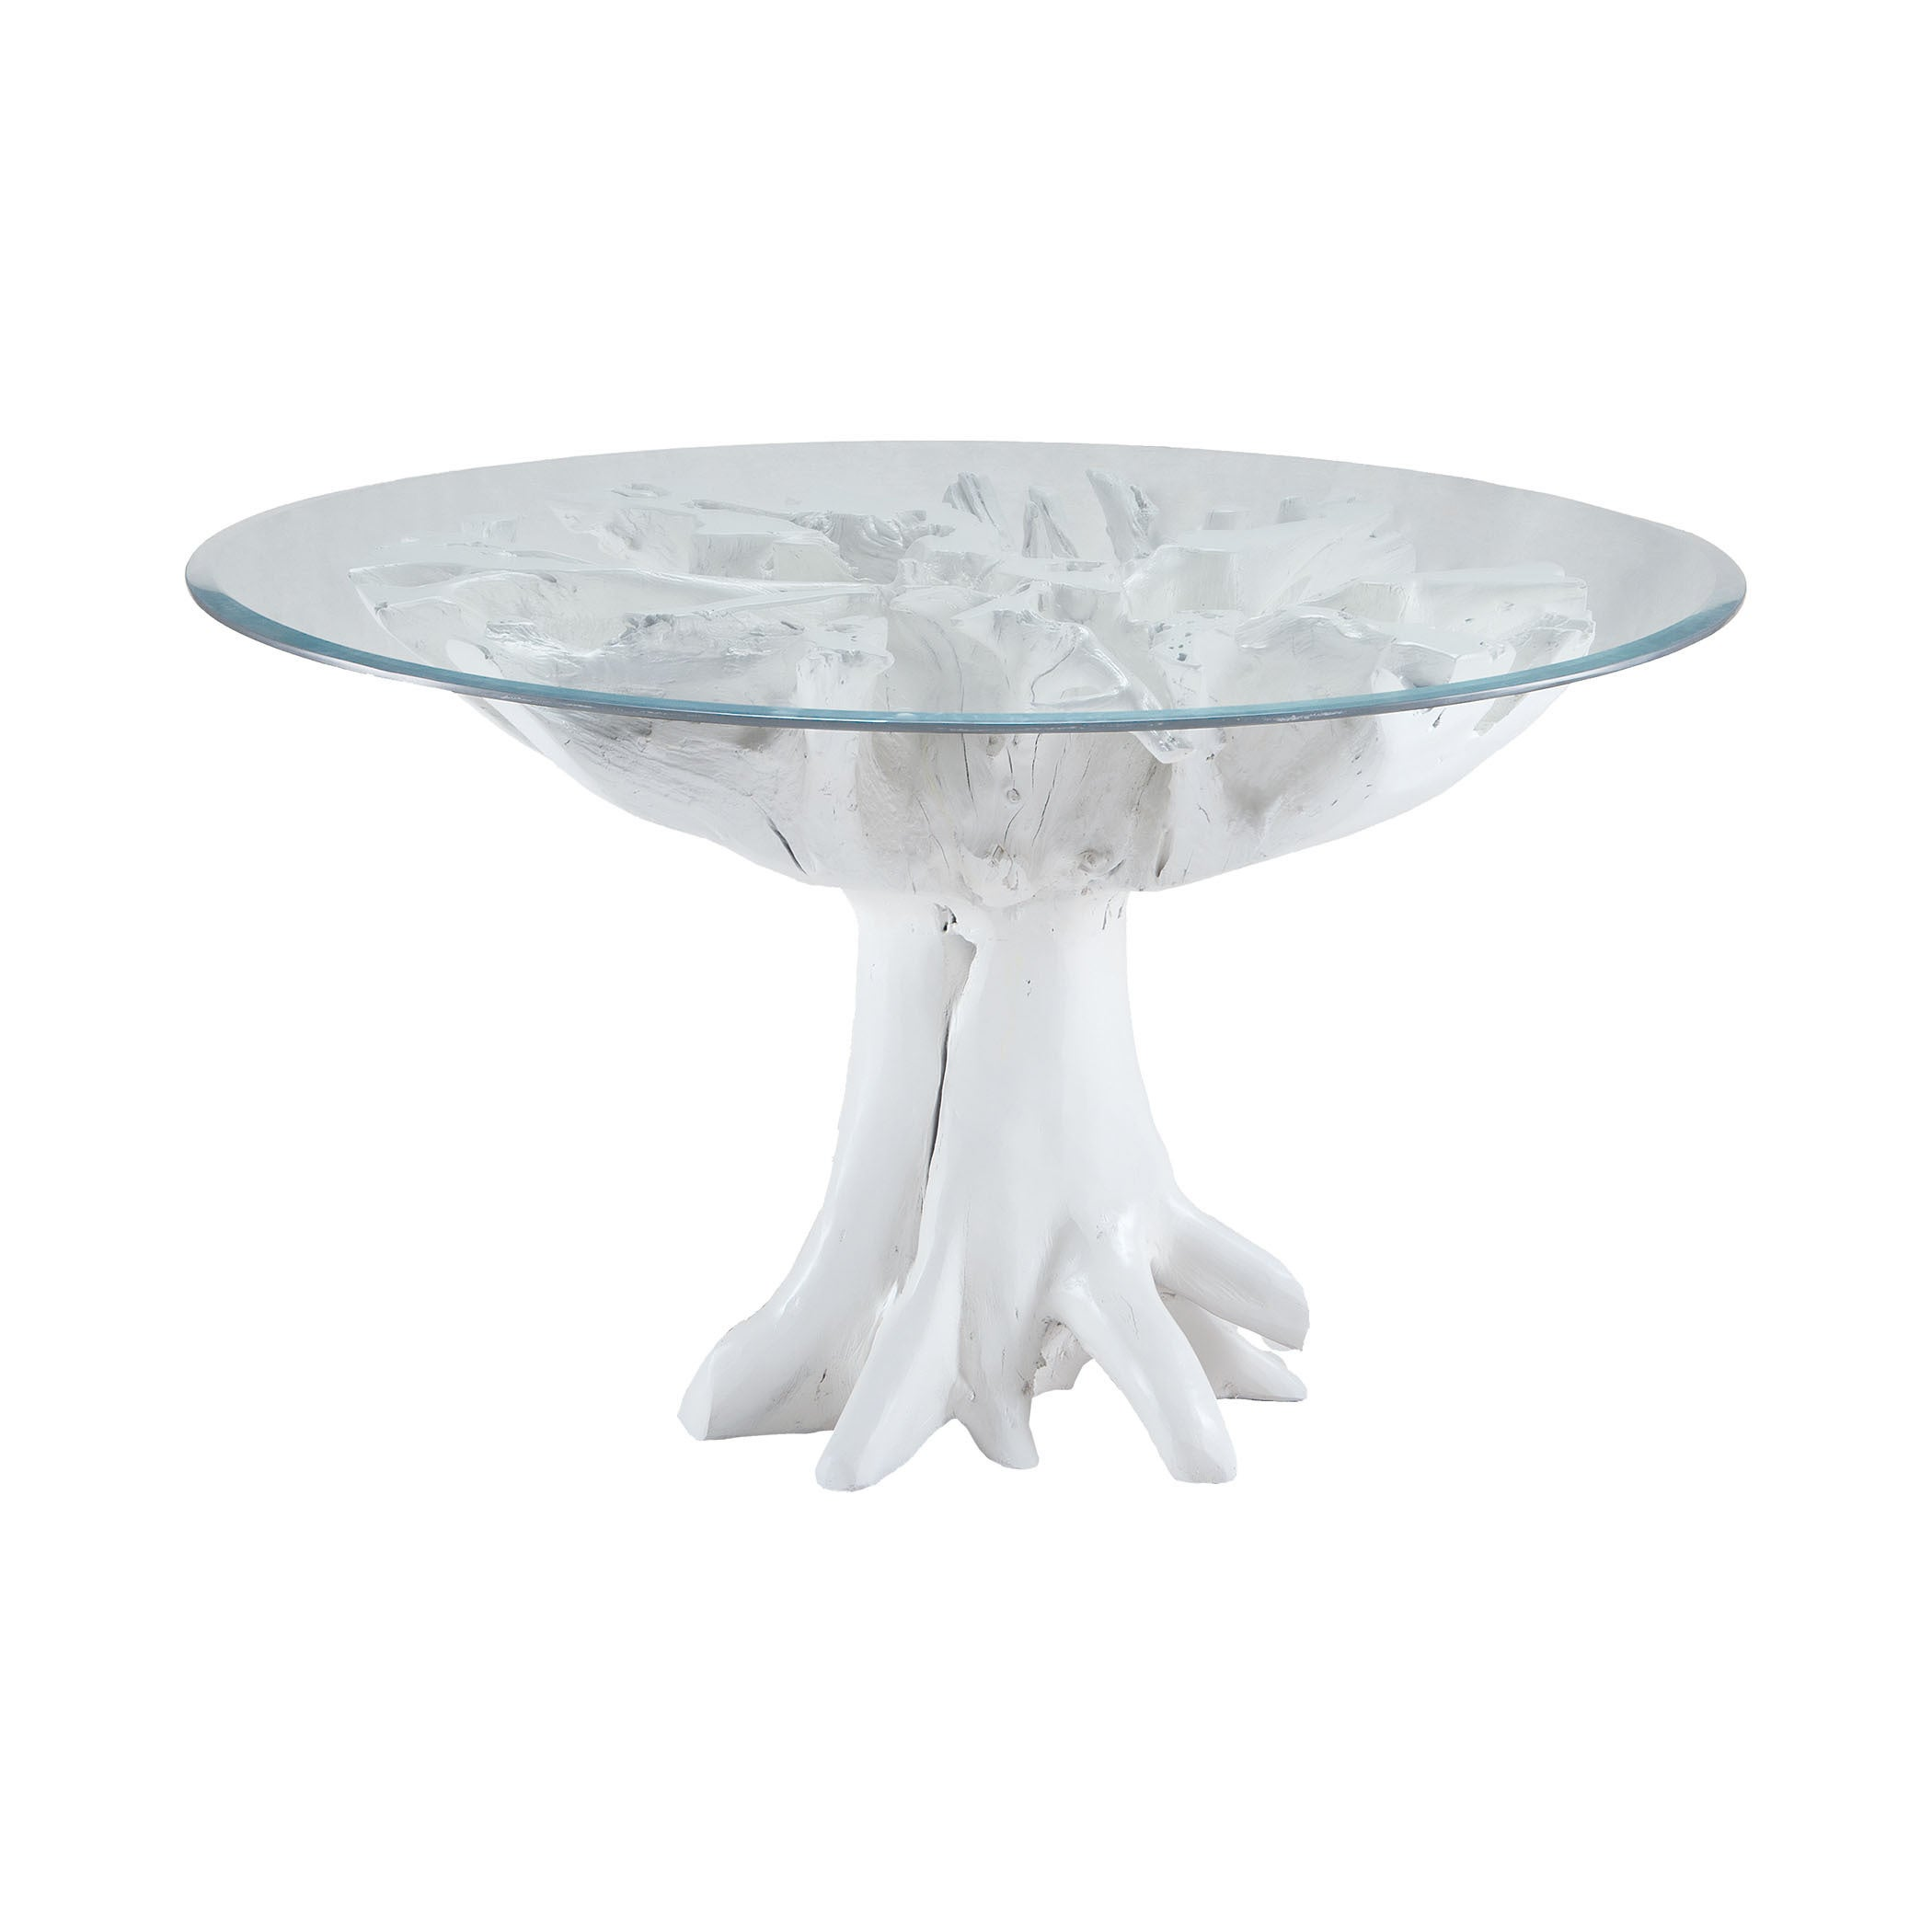 LS Dimond Home White Teak Root Entry Table (Gloss White)